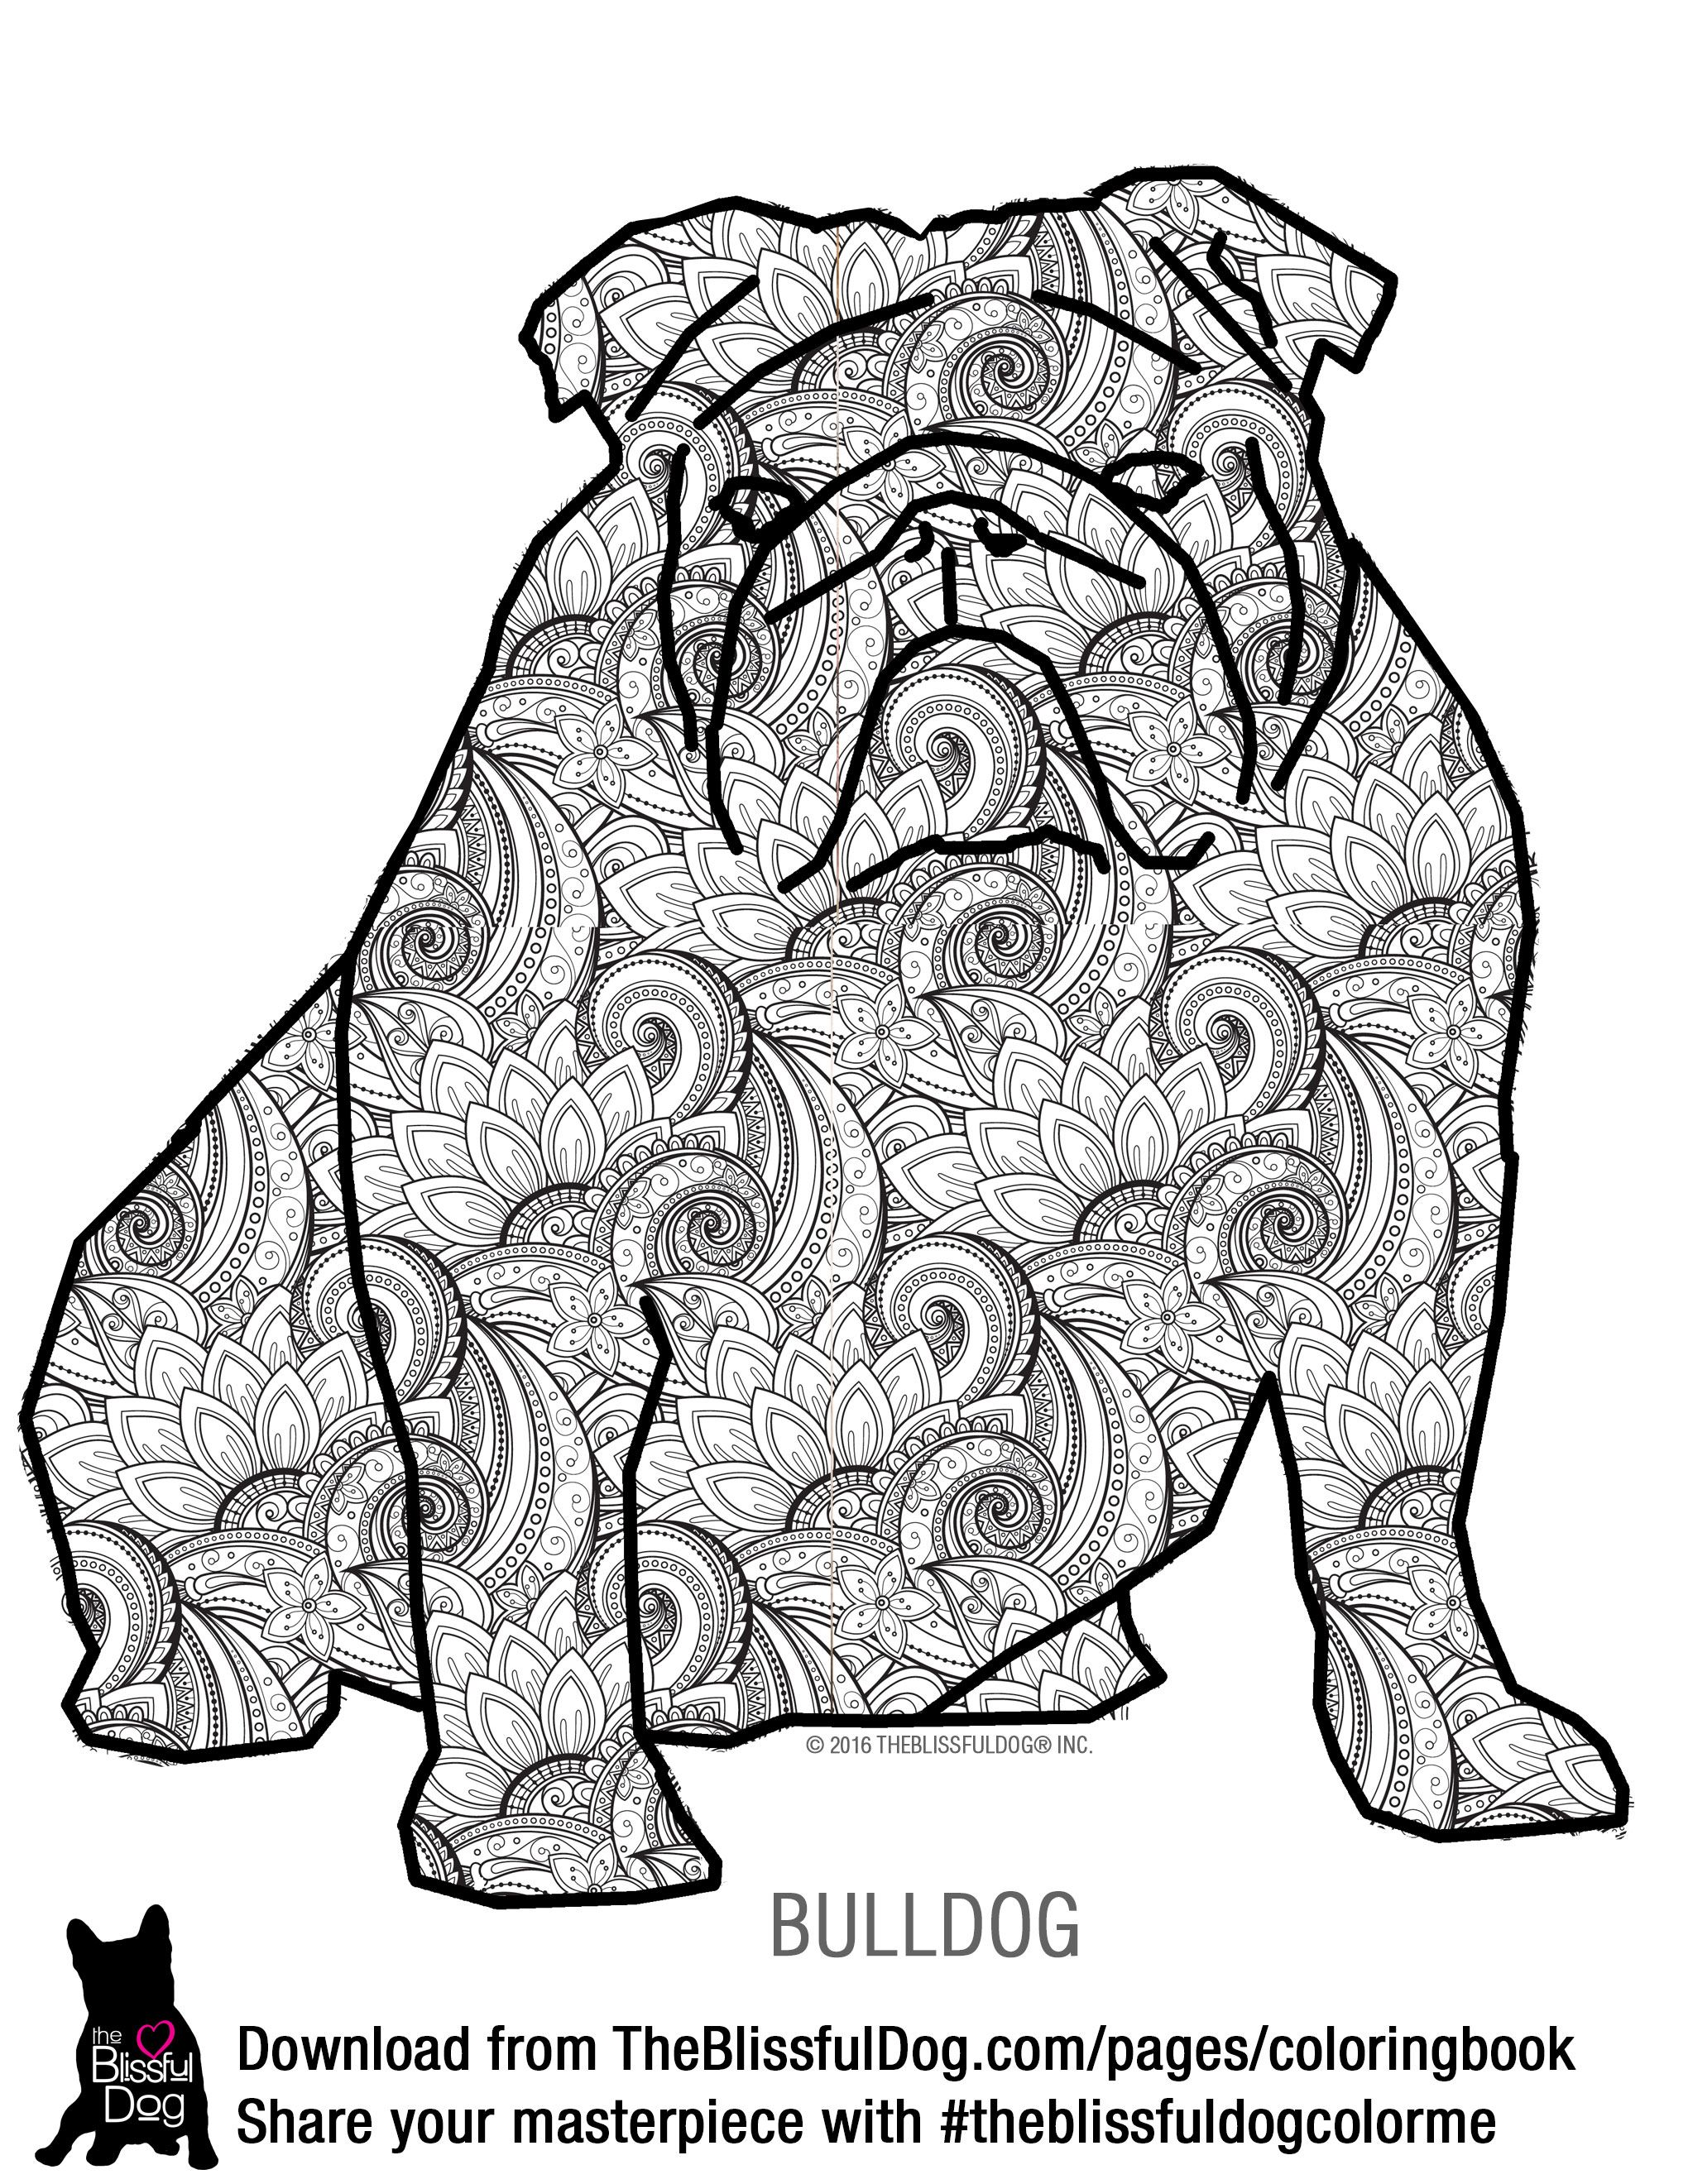 Here Is The Bulldog Coloring Book Page Big File For High Rez